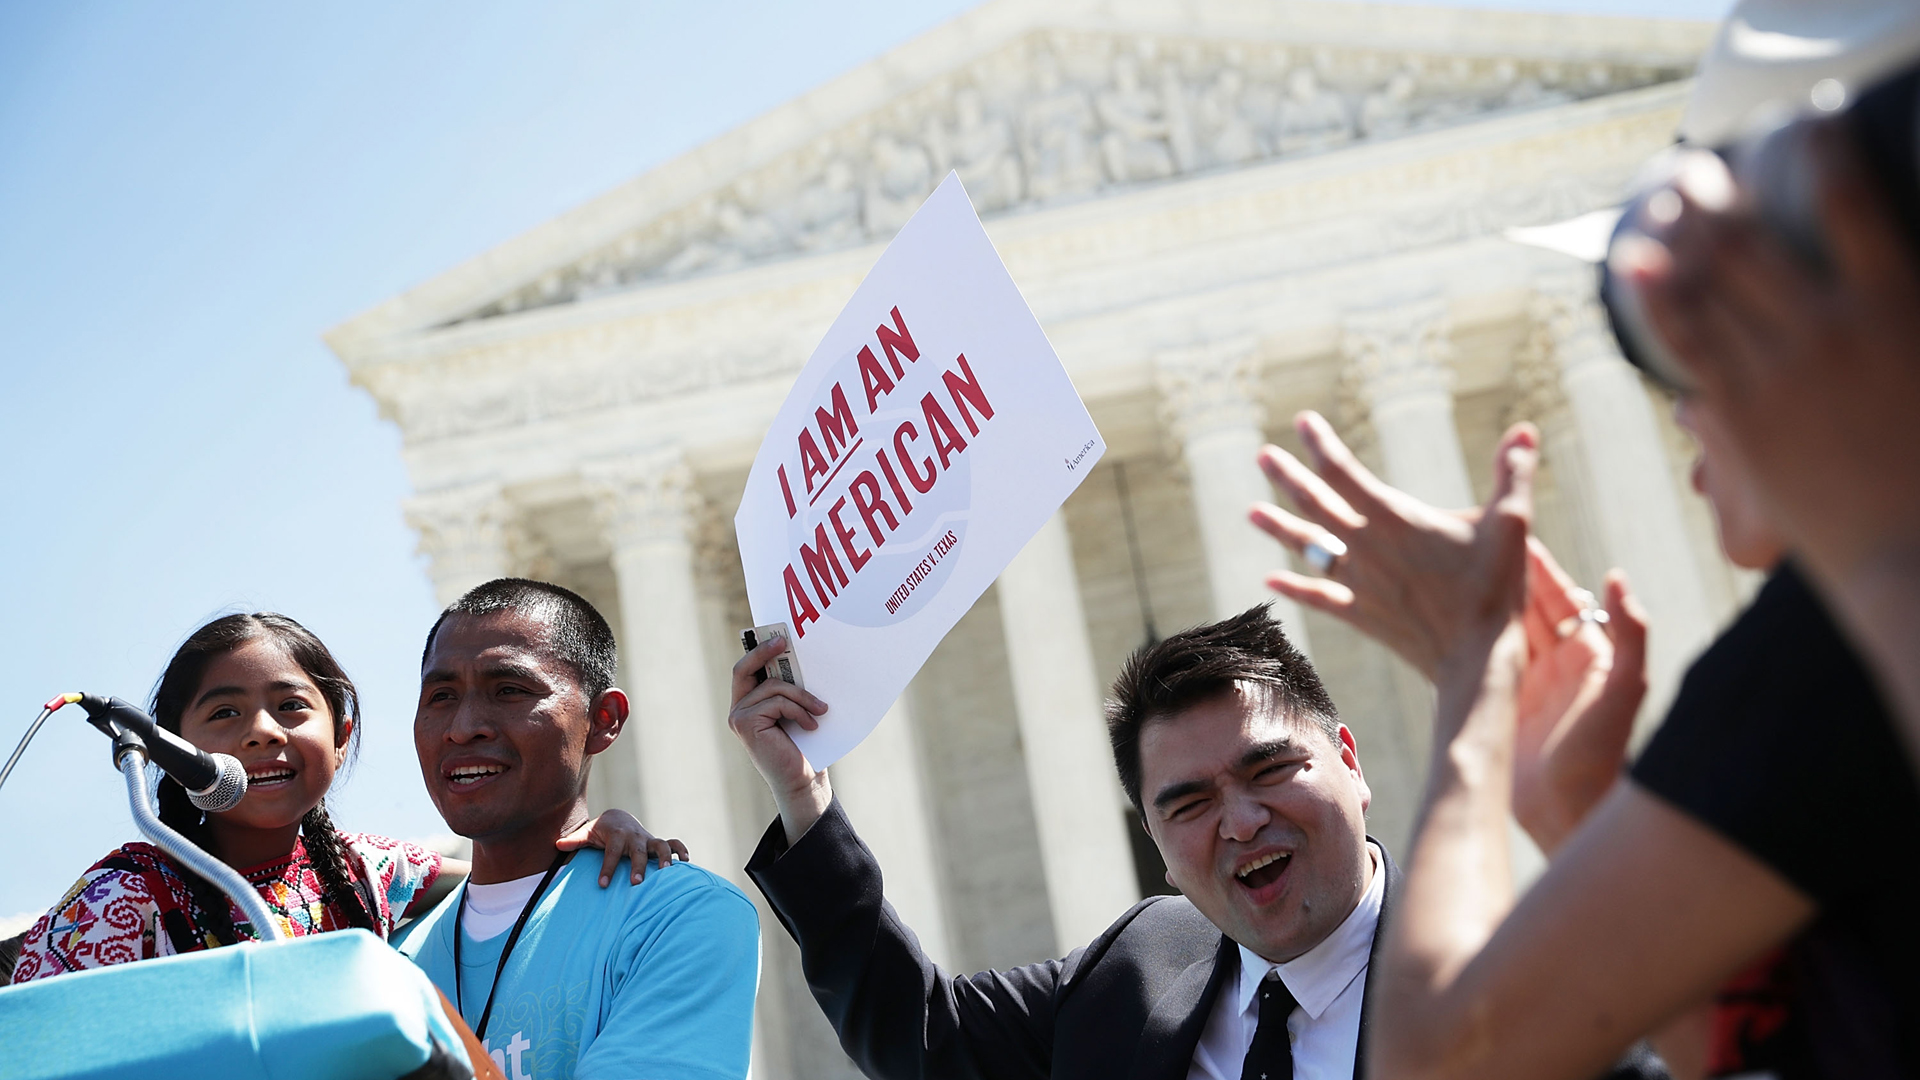 Six-year-old Sophie Cruz, left, speaks during a rally in front of the U.S. Supreme Court next to her father Raul Cruz and supporter Jose Antonio Vargas, right, on April 18, 2016 in Washington, DC. The Supreme Court heard oral arguments in the case of United States v. Texas, which is challenging President Obama's 2014 executive actions on immigration - the Deferred Action for Children Arrivals (DACA) and Deferred Action for Parents of American and Lawful Permanent Residents (DAPA) programs. (Credit: Alex Wong/Getty Images)